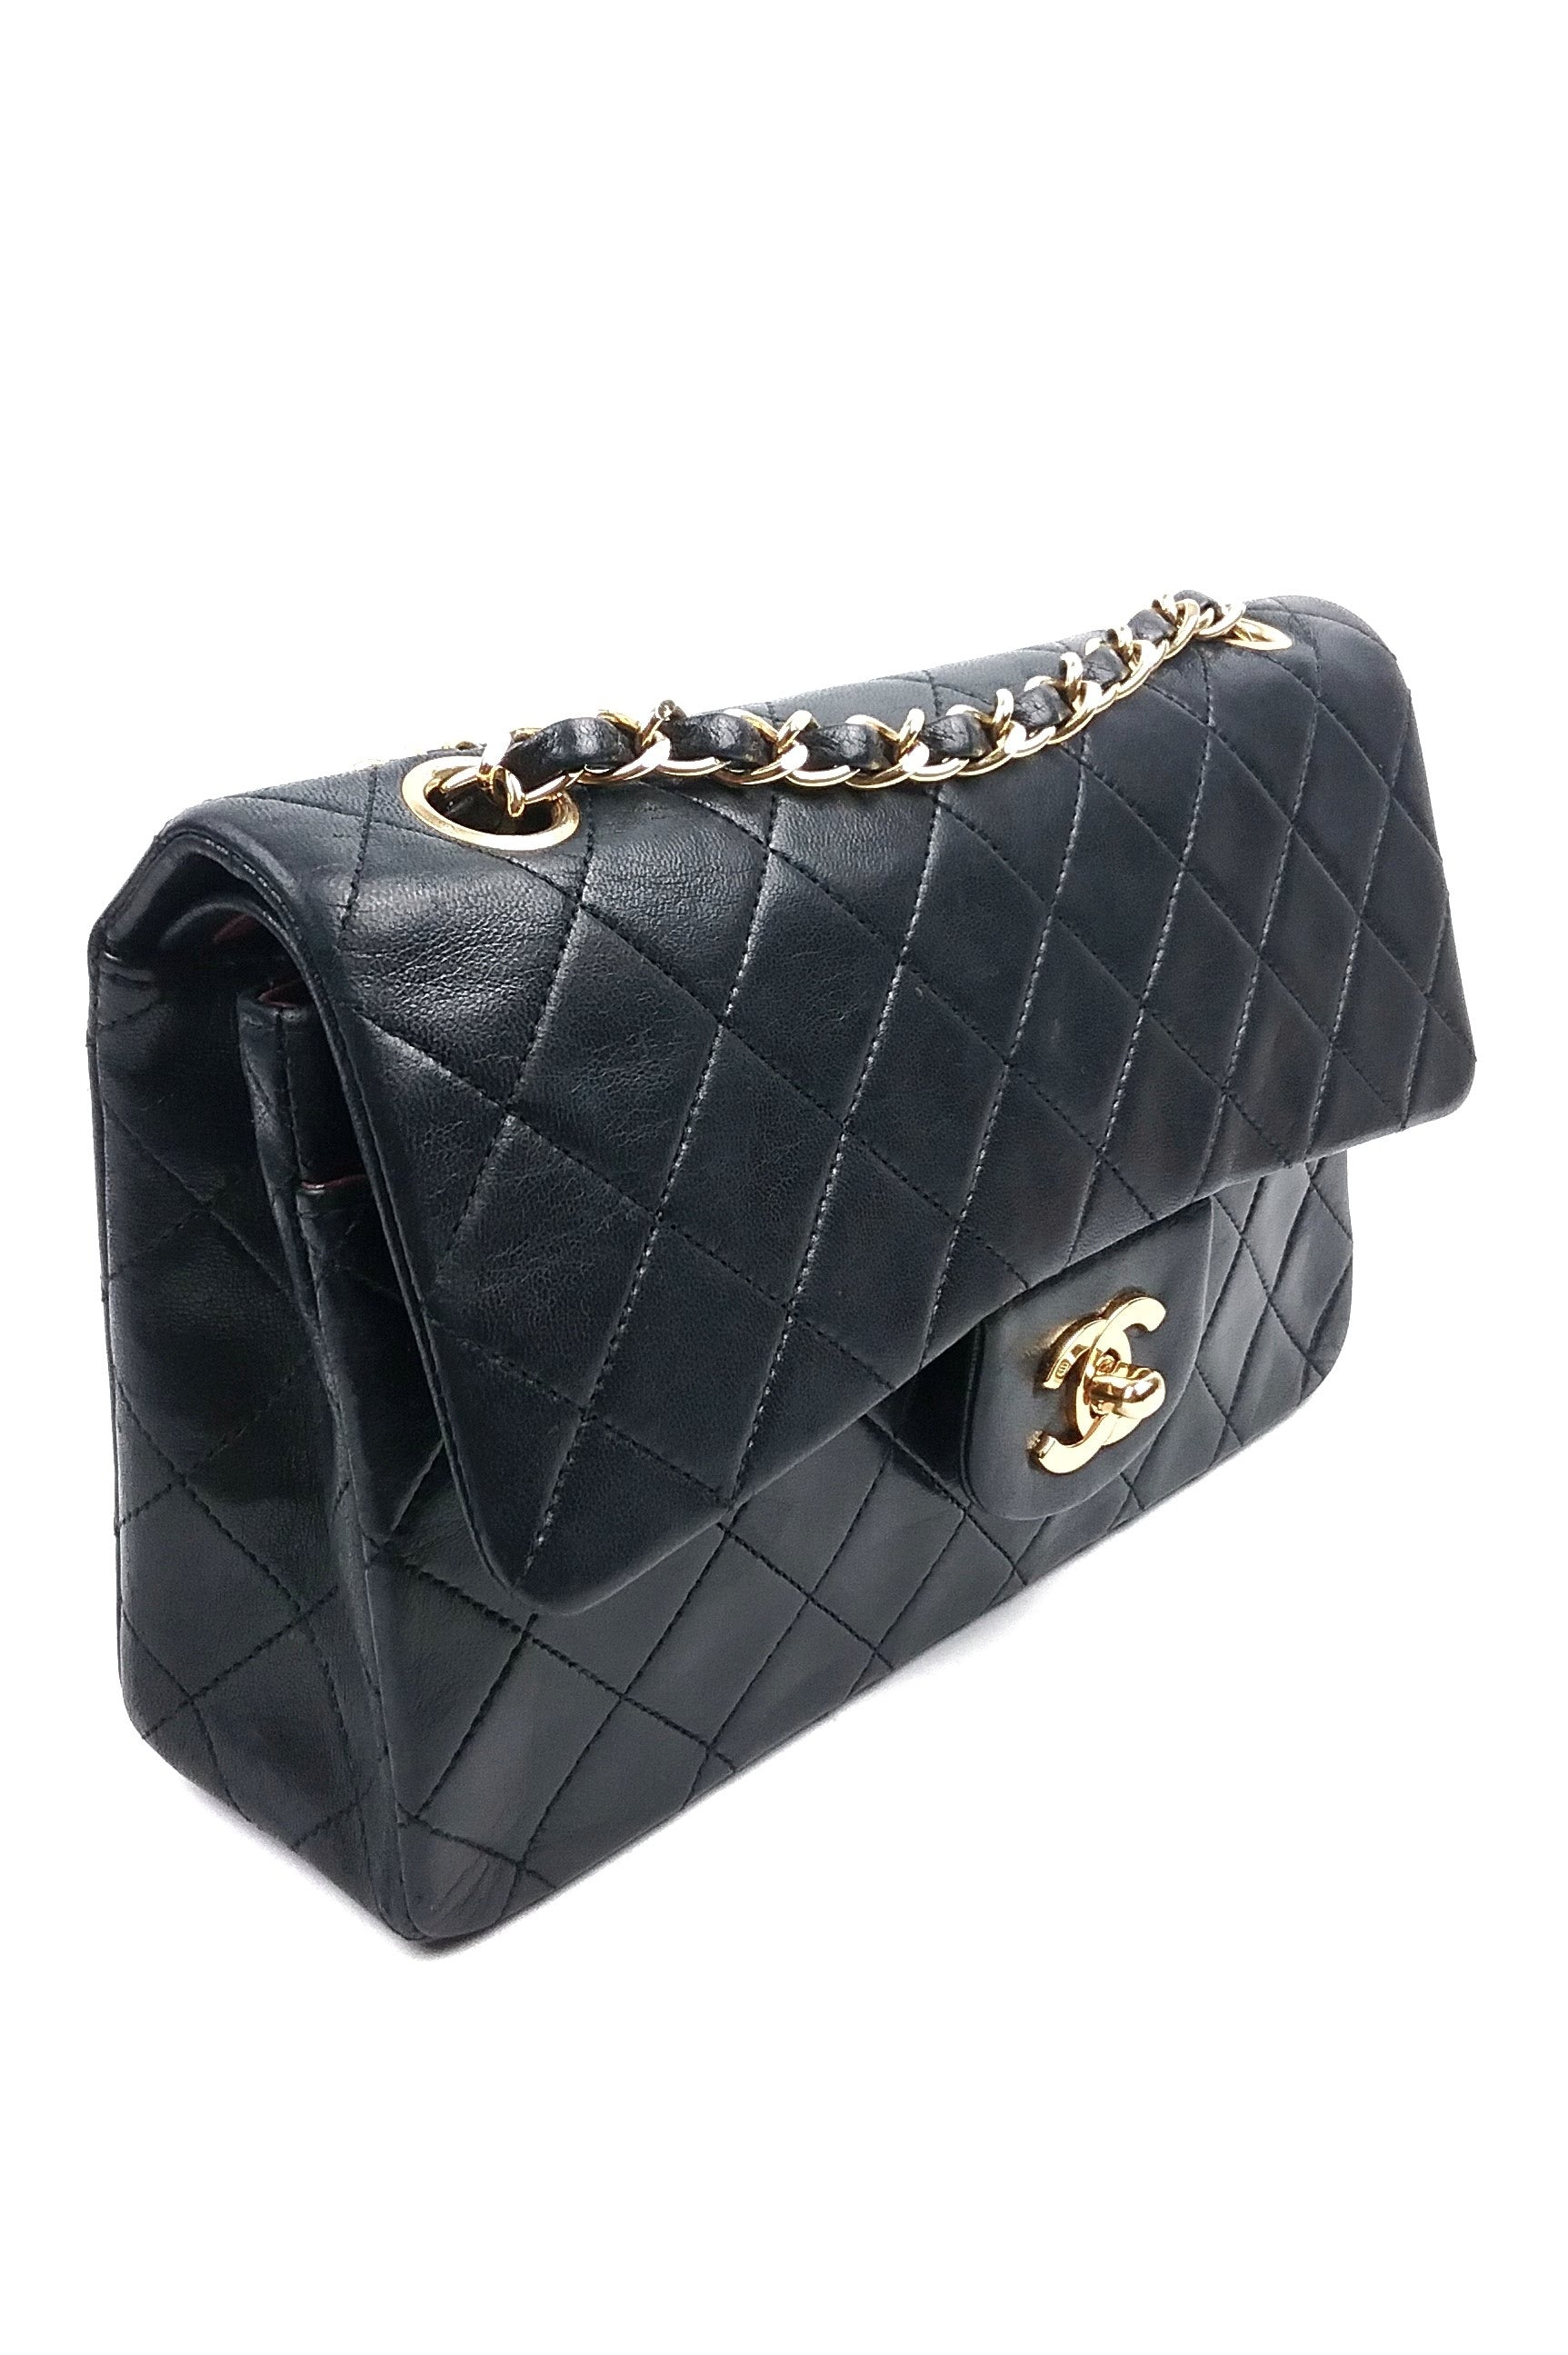 "Black Lambskin Quilted Vintage 9"" Double Flap GHW"